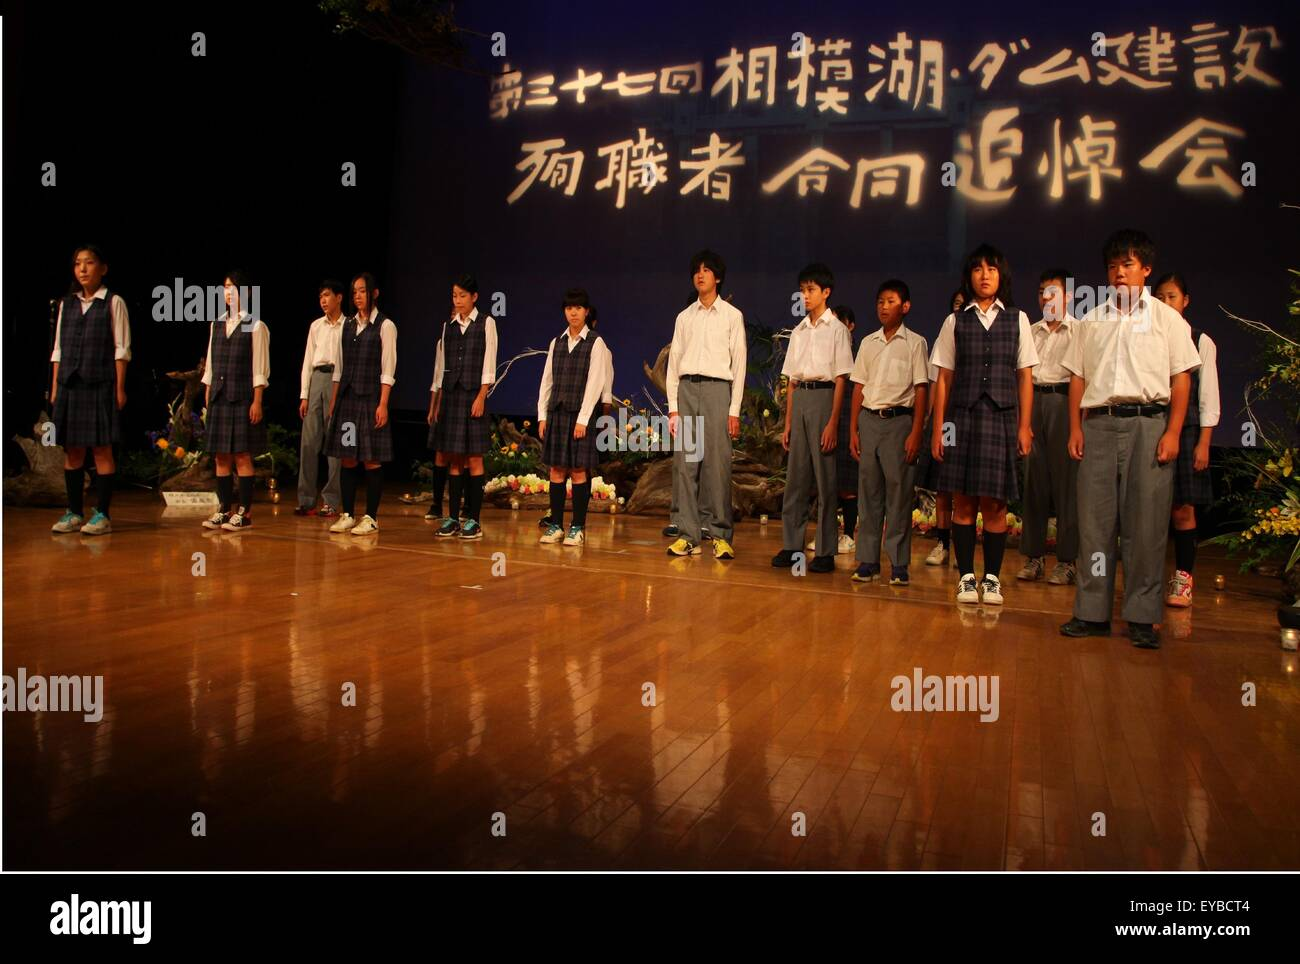 (150726) -- KANAGAWA, July 26, 2015 (Xinhua) -- Students recite a poem during a memorial ceremony to mourn the victims - Stock Image